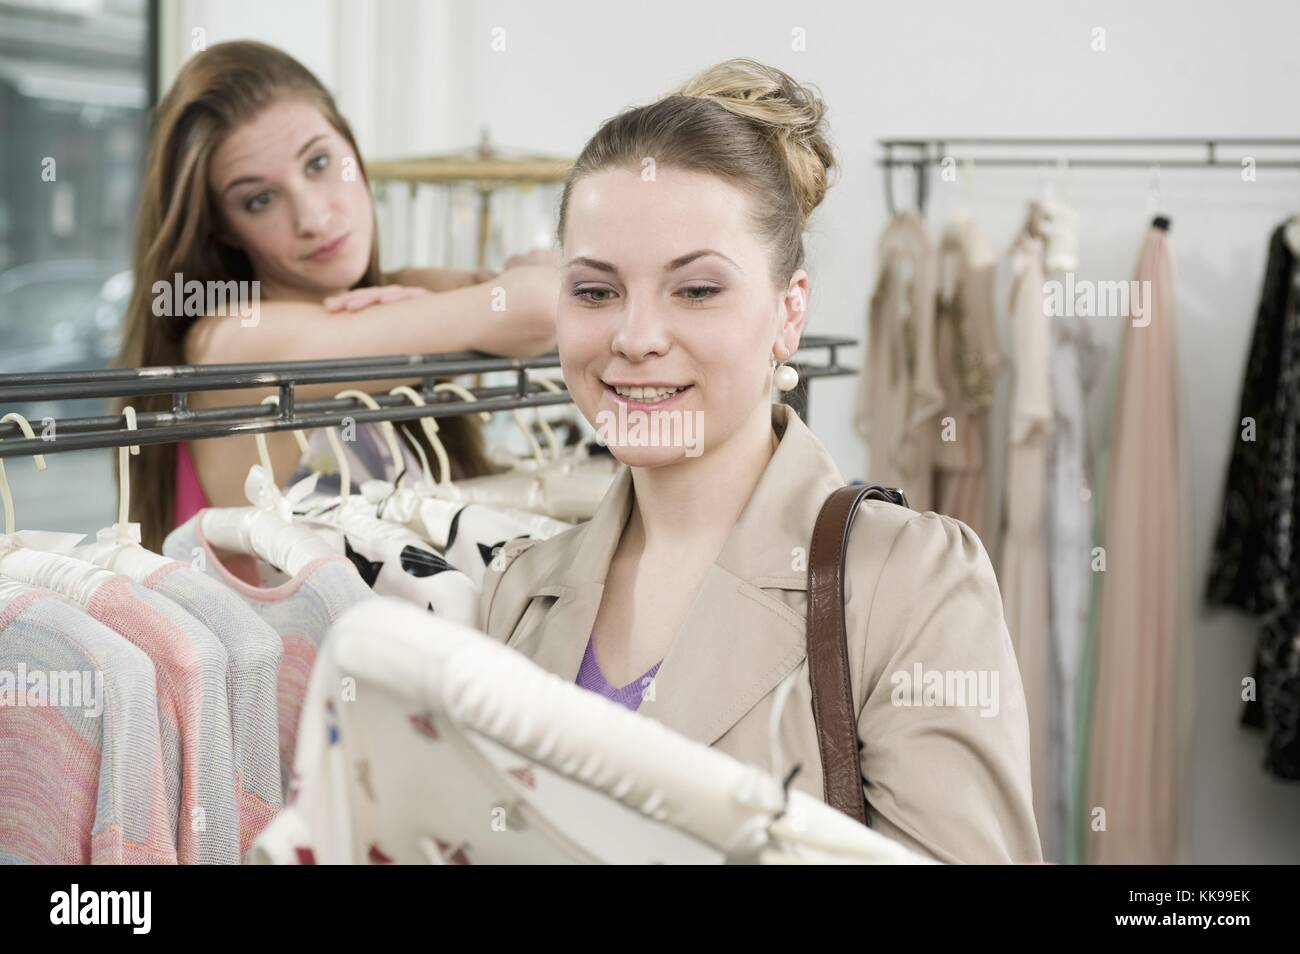 Sales girl with customer in fashion store | usage worldwide, Royalty free: For comercial usage price on demand. - Stock Image